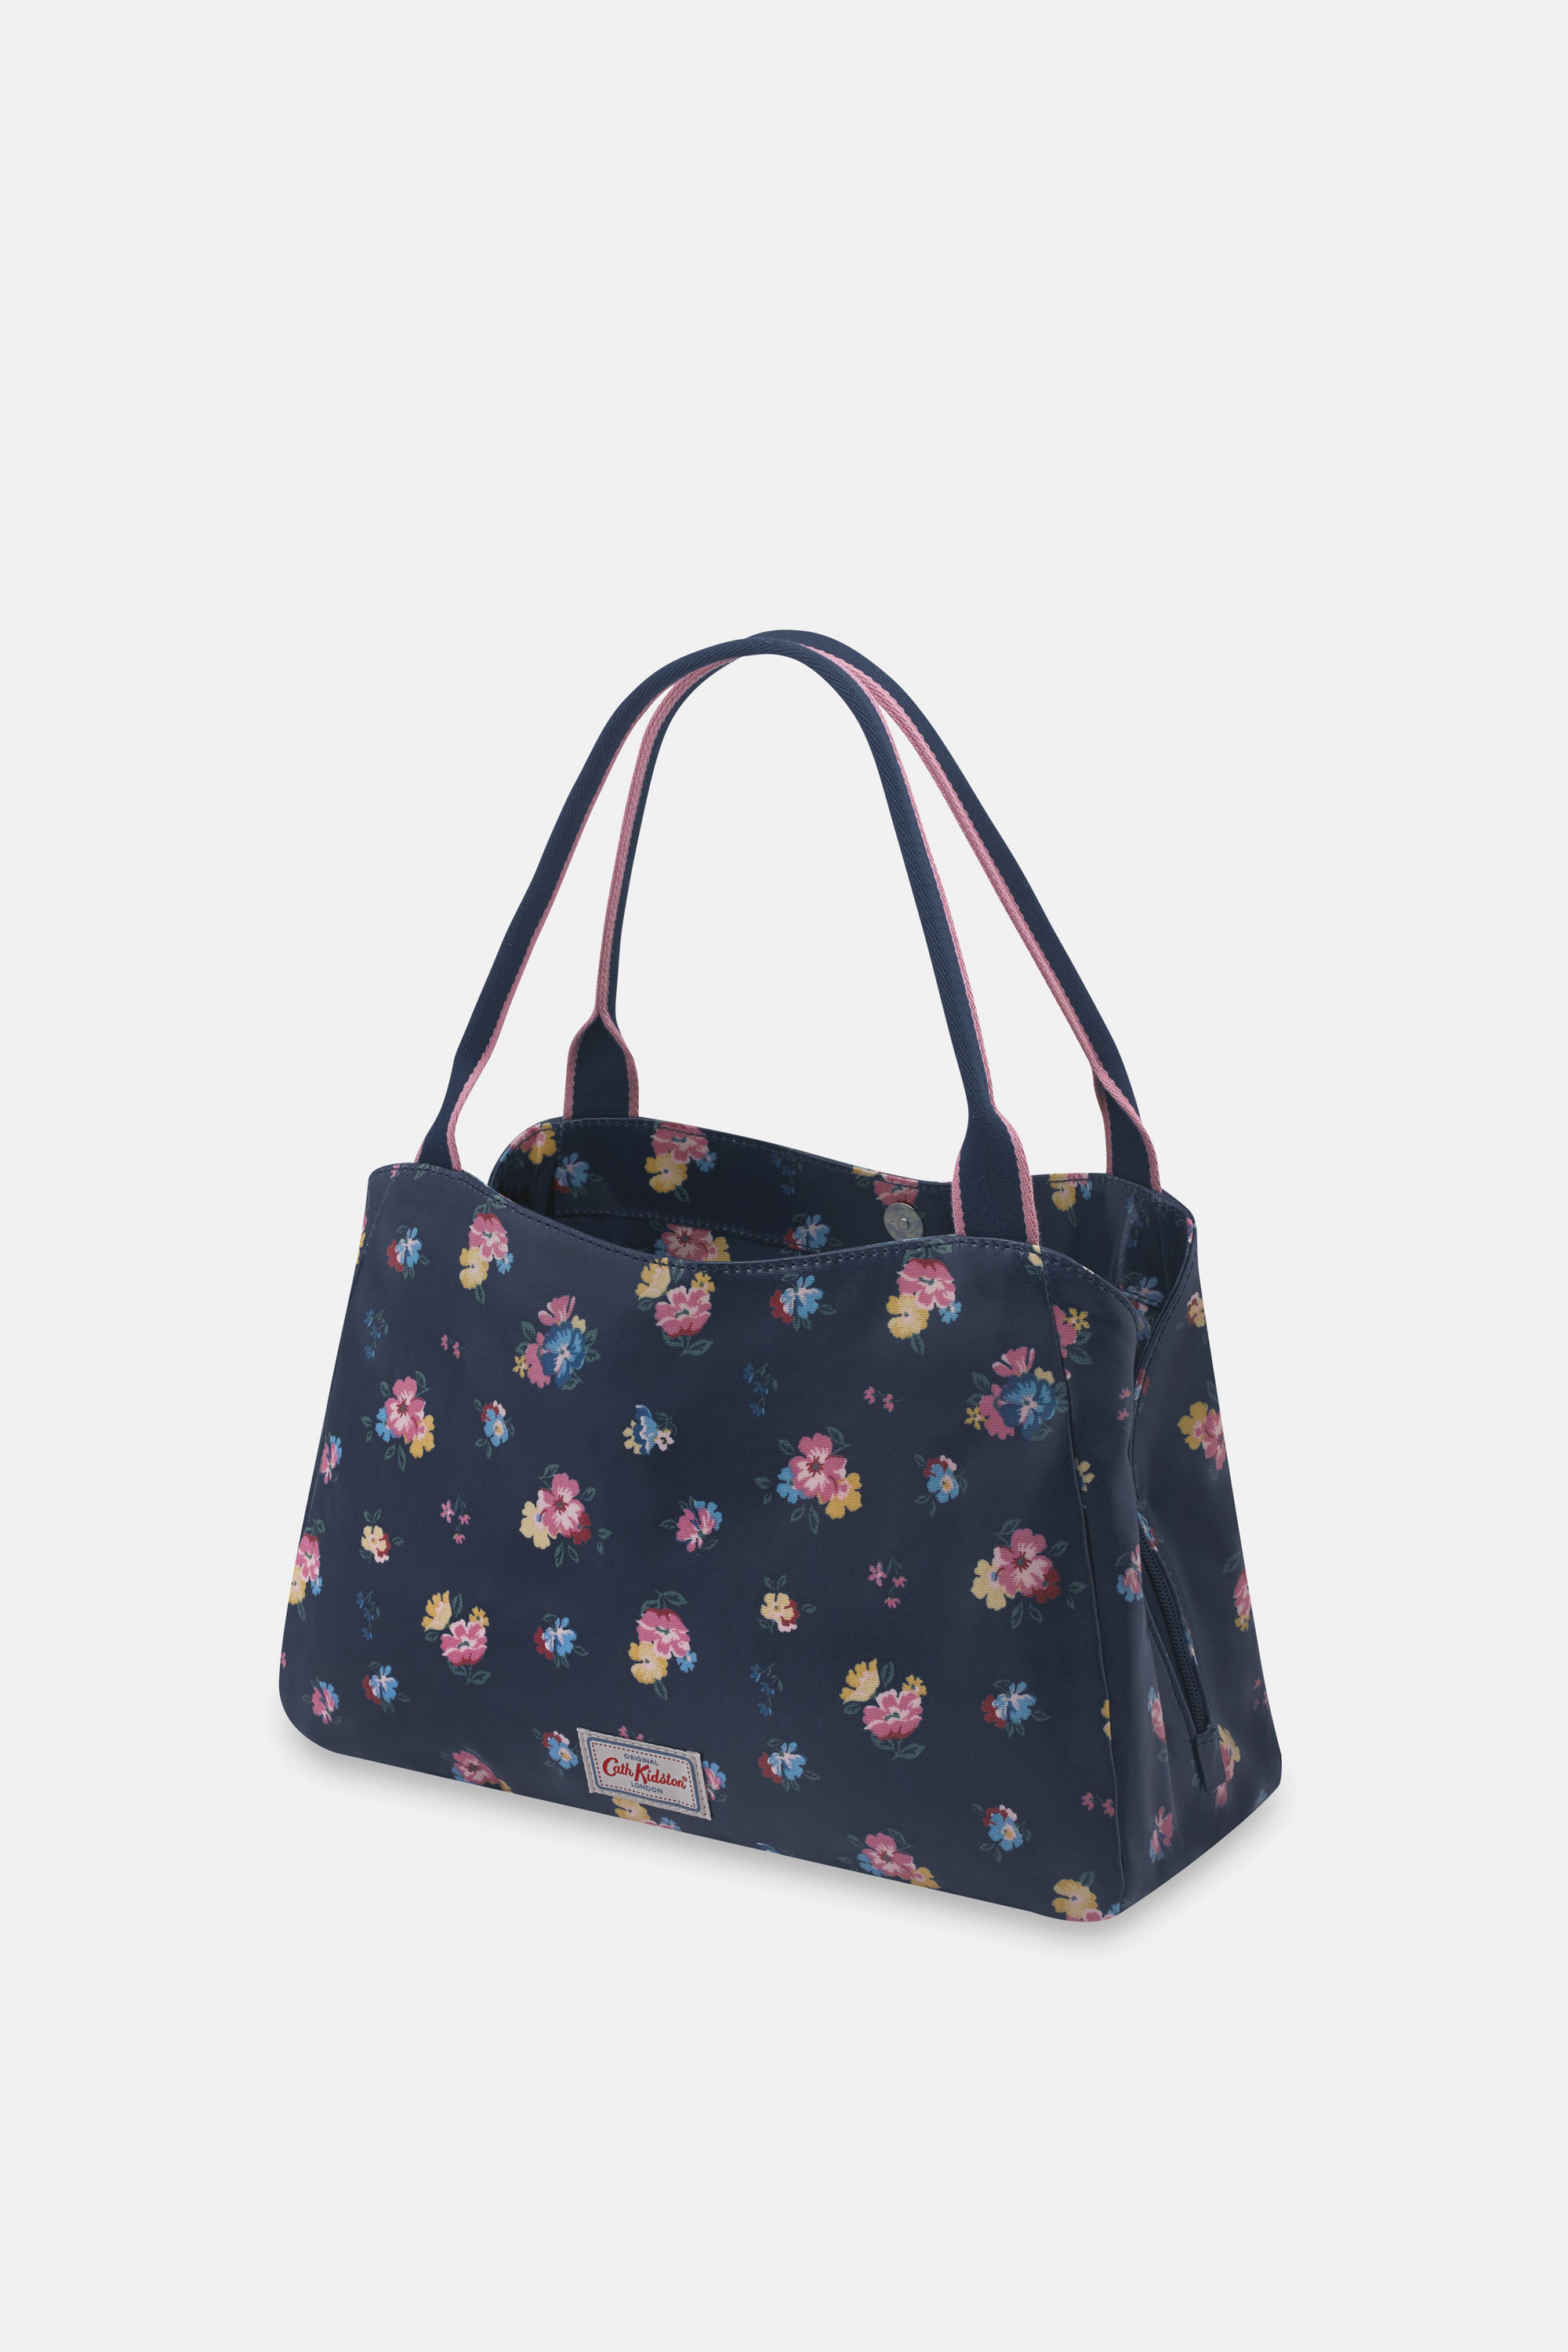 Cath Kidston Park Meadow New Day Bag in Navy